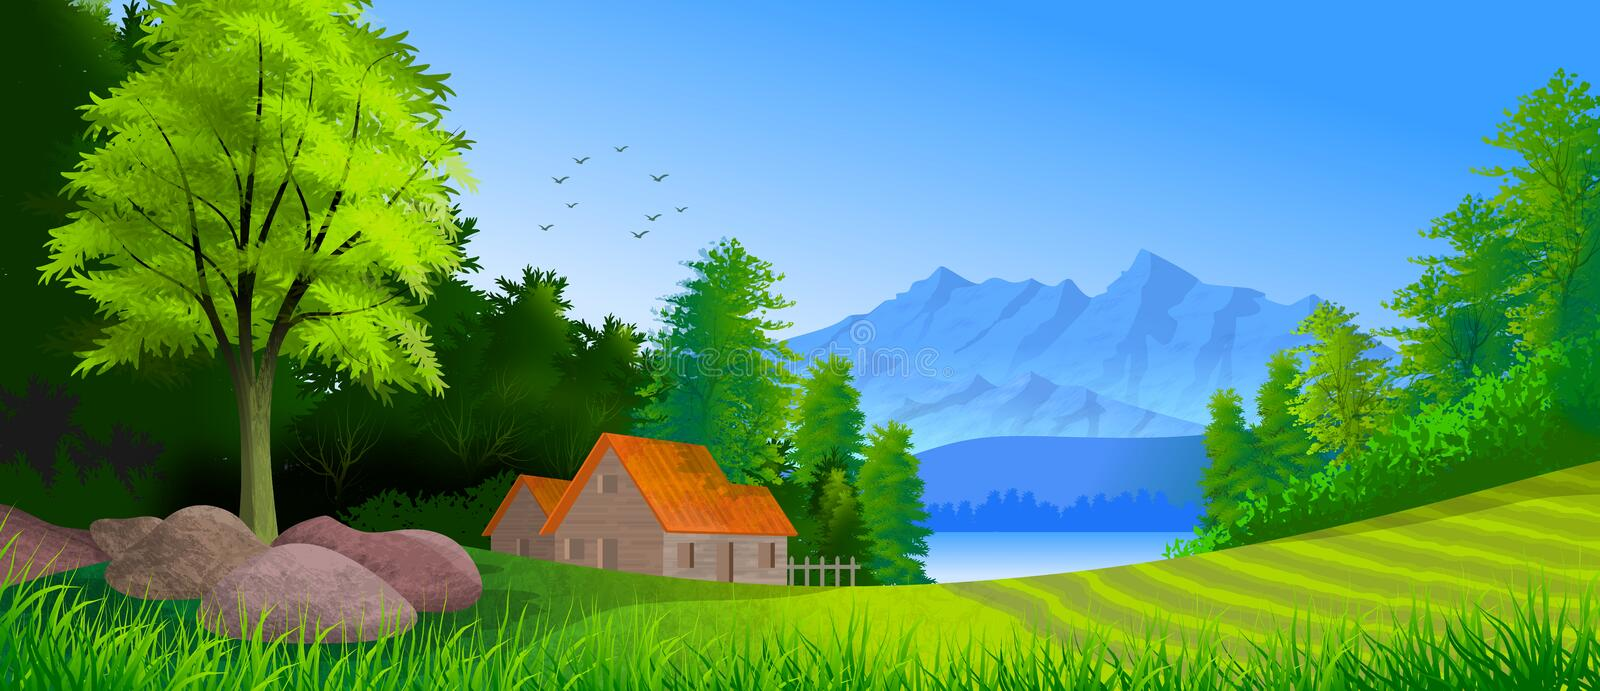 Background with illustration of natural landscaping with mountain, lake and cottage among trees and greenery. royalty free stock photo